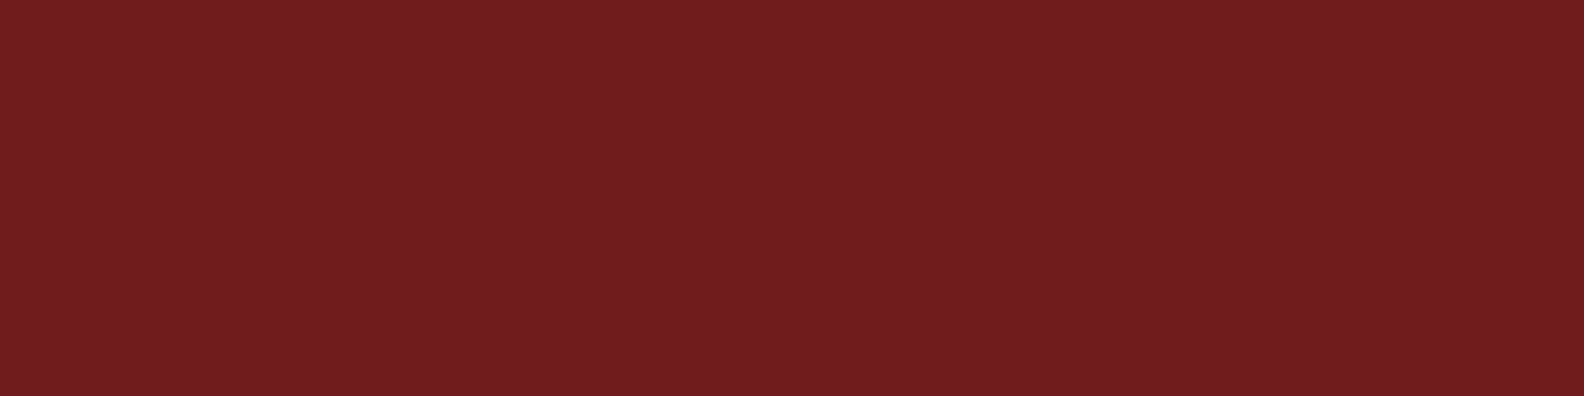 1584x396 Persian Plum Solid Color Background